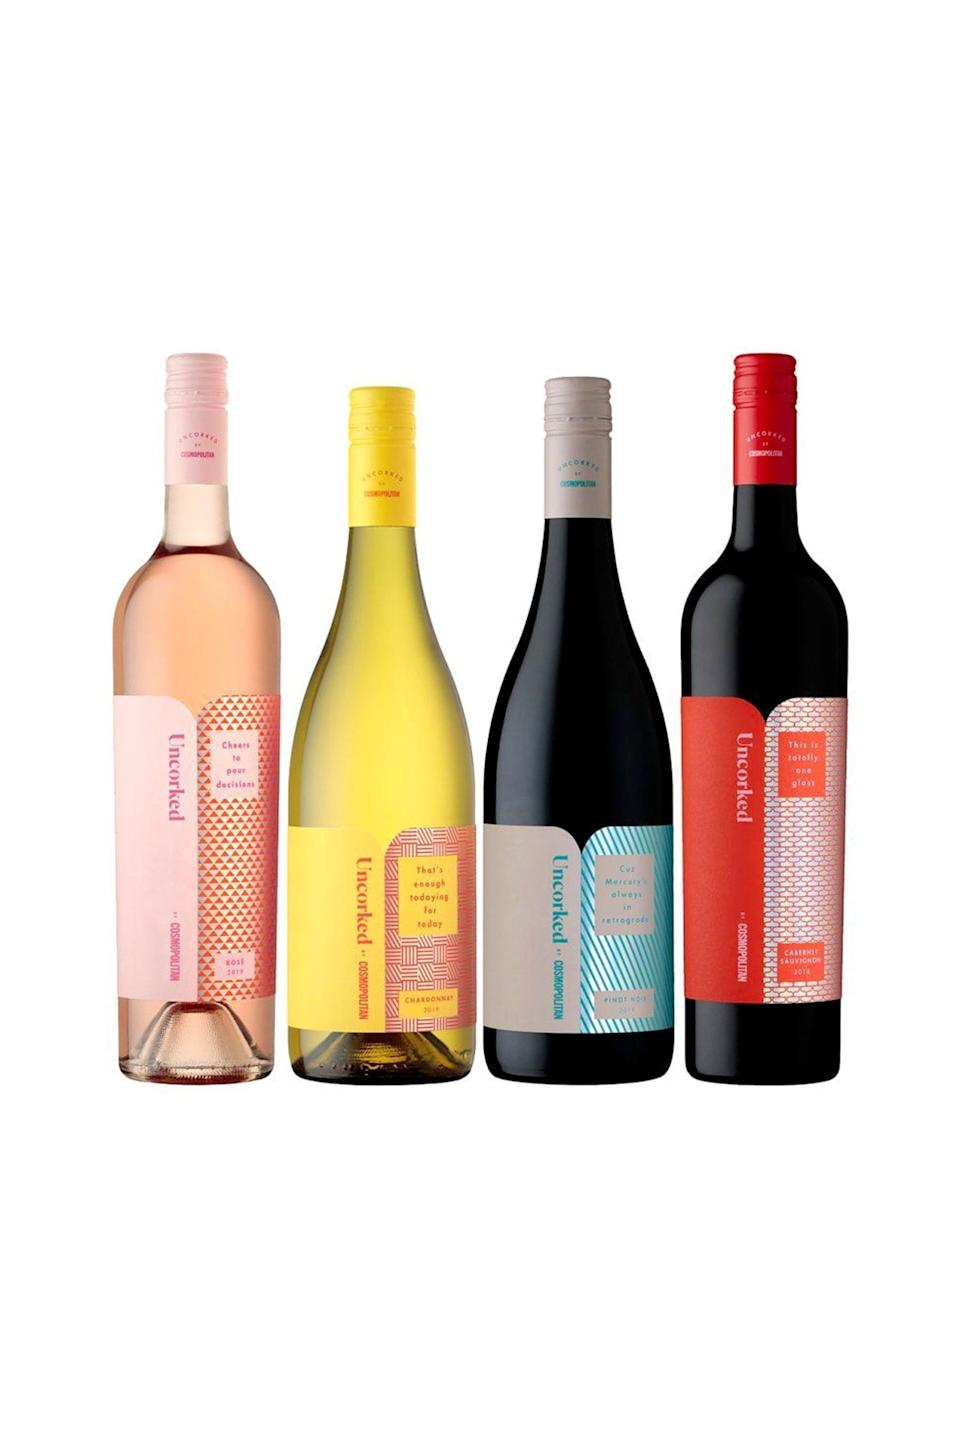 "<p><strong>Uncorked by Cosmopolitan</strong></p><p>Wine.com</p><p><strong>$58.99</strong></p><p><a href=""https://go.redirectingat.com?id=74968X1596630&url=https%3A%2F%2Fwww.wine.com%2Fproduct%2Funcorked-by-cosmopolitan-tasting-set%2F681314&sref=https%3A%2F%2Fwww.cosmopolitan.com%2Fstyle-beauty%2Ffashion%2Fg20108306%2Fbest-last-minute-mothers-day-gifts%2F"" rel=""nofollow noopener"" target=""_blank"" data-ylk=""slk:Shop Now"" class=""link rapid-noclick-resp"">Shop Now</a></p><p>And speaking of wine... Ahem, we (as in <em>Cosmo</em>) make a pretty stellar line-up of vino, ourselves. Not only is it absolutely delish, but the whole set can be delivered in just a few short days.</p>"